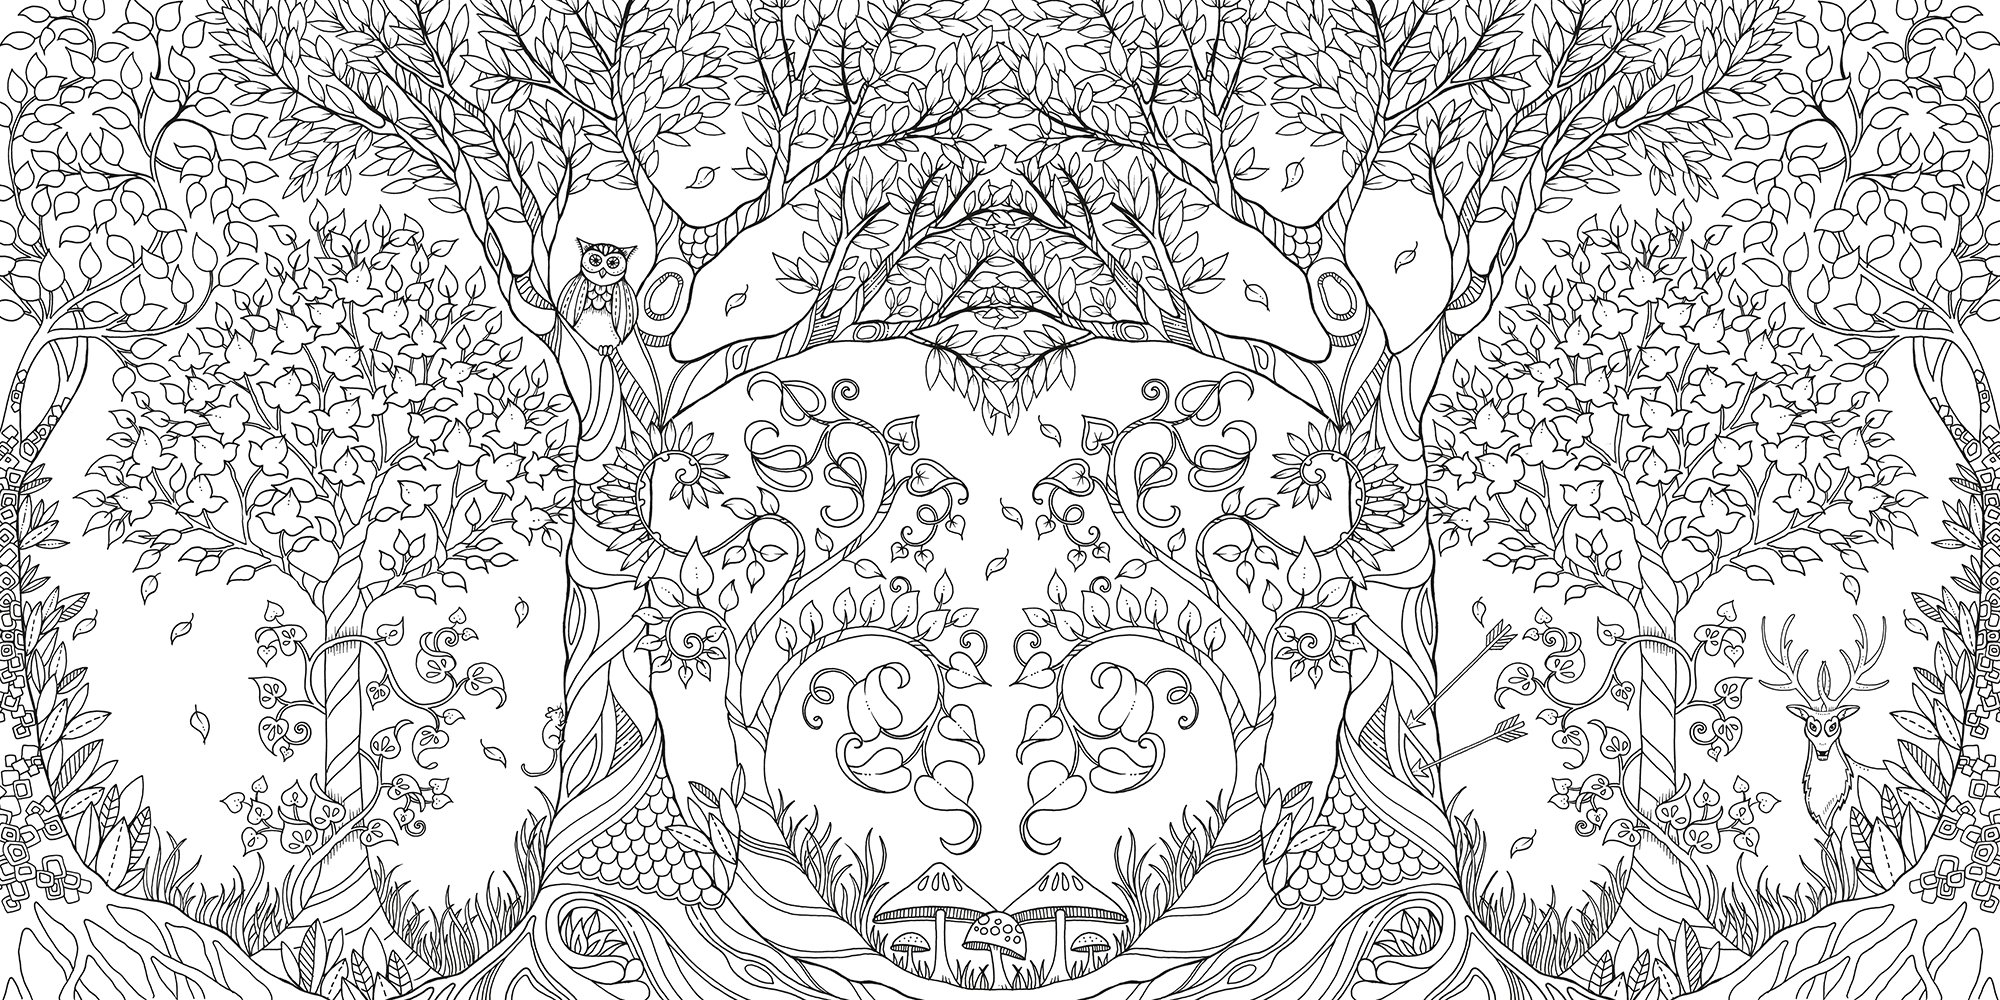 Enchanted forest an inky quest coloring book johanna basford 6063887956574 amazon com books